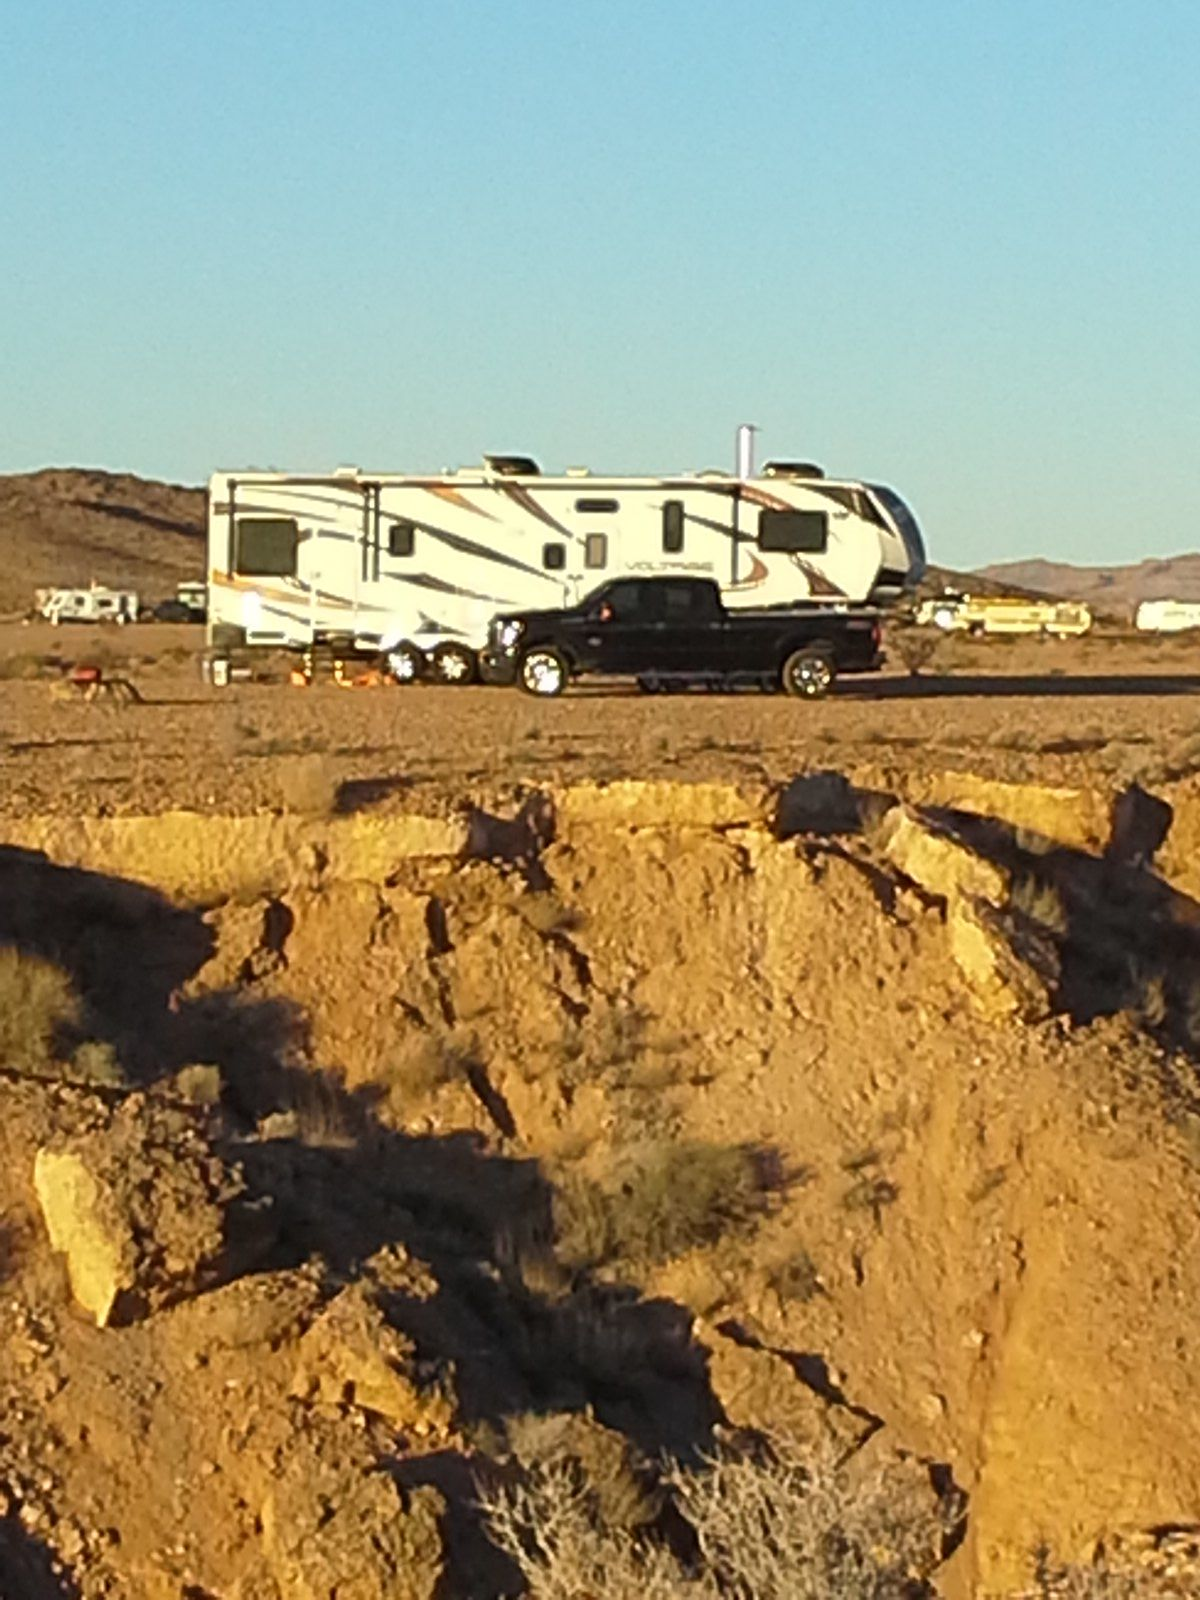 I want to be able to pay off our 5th wheel and afford to use it.